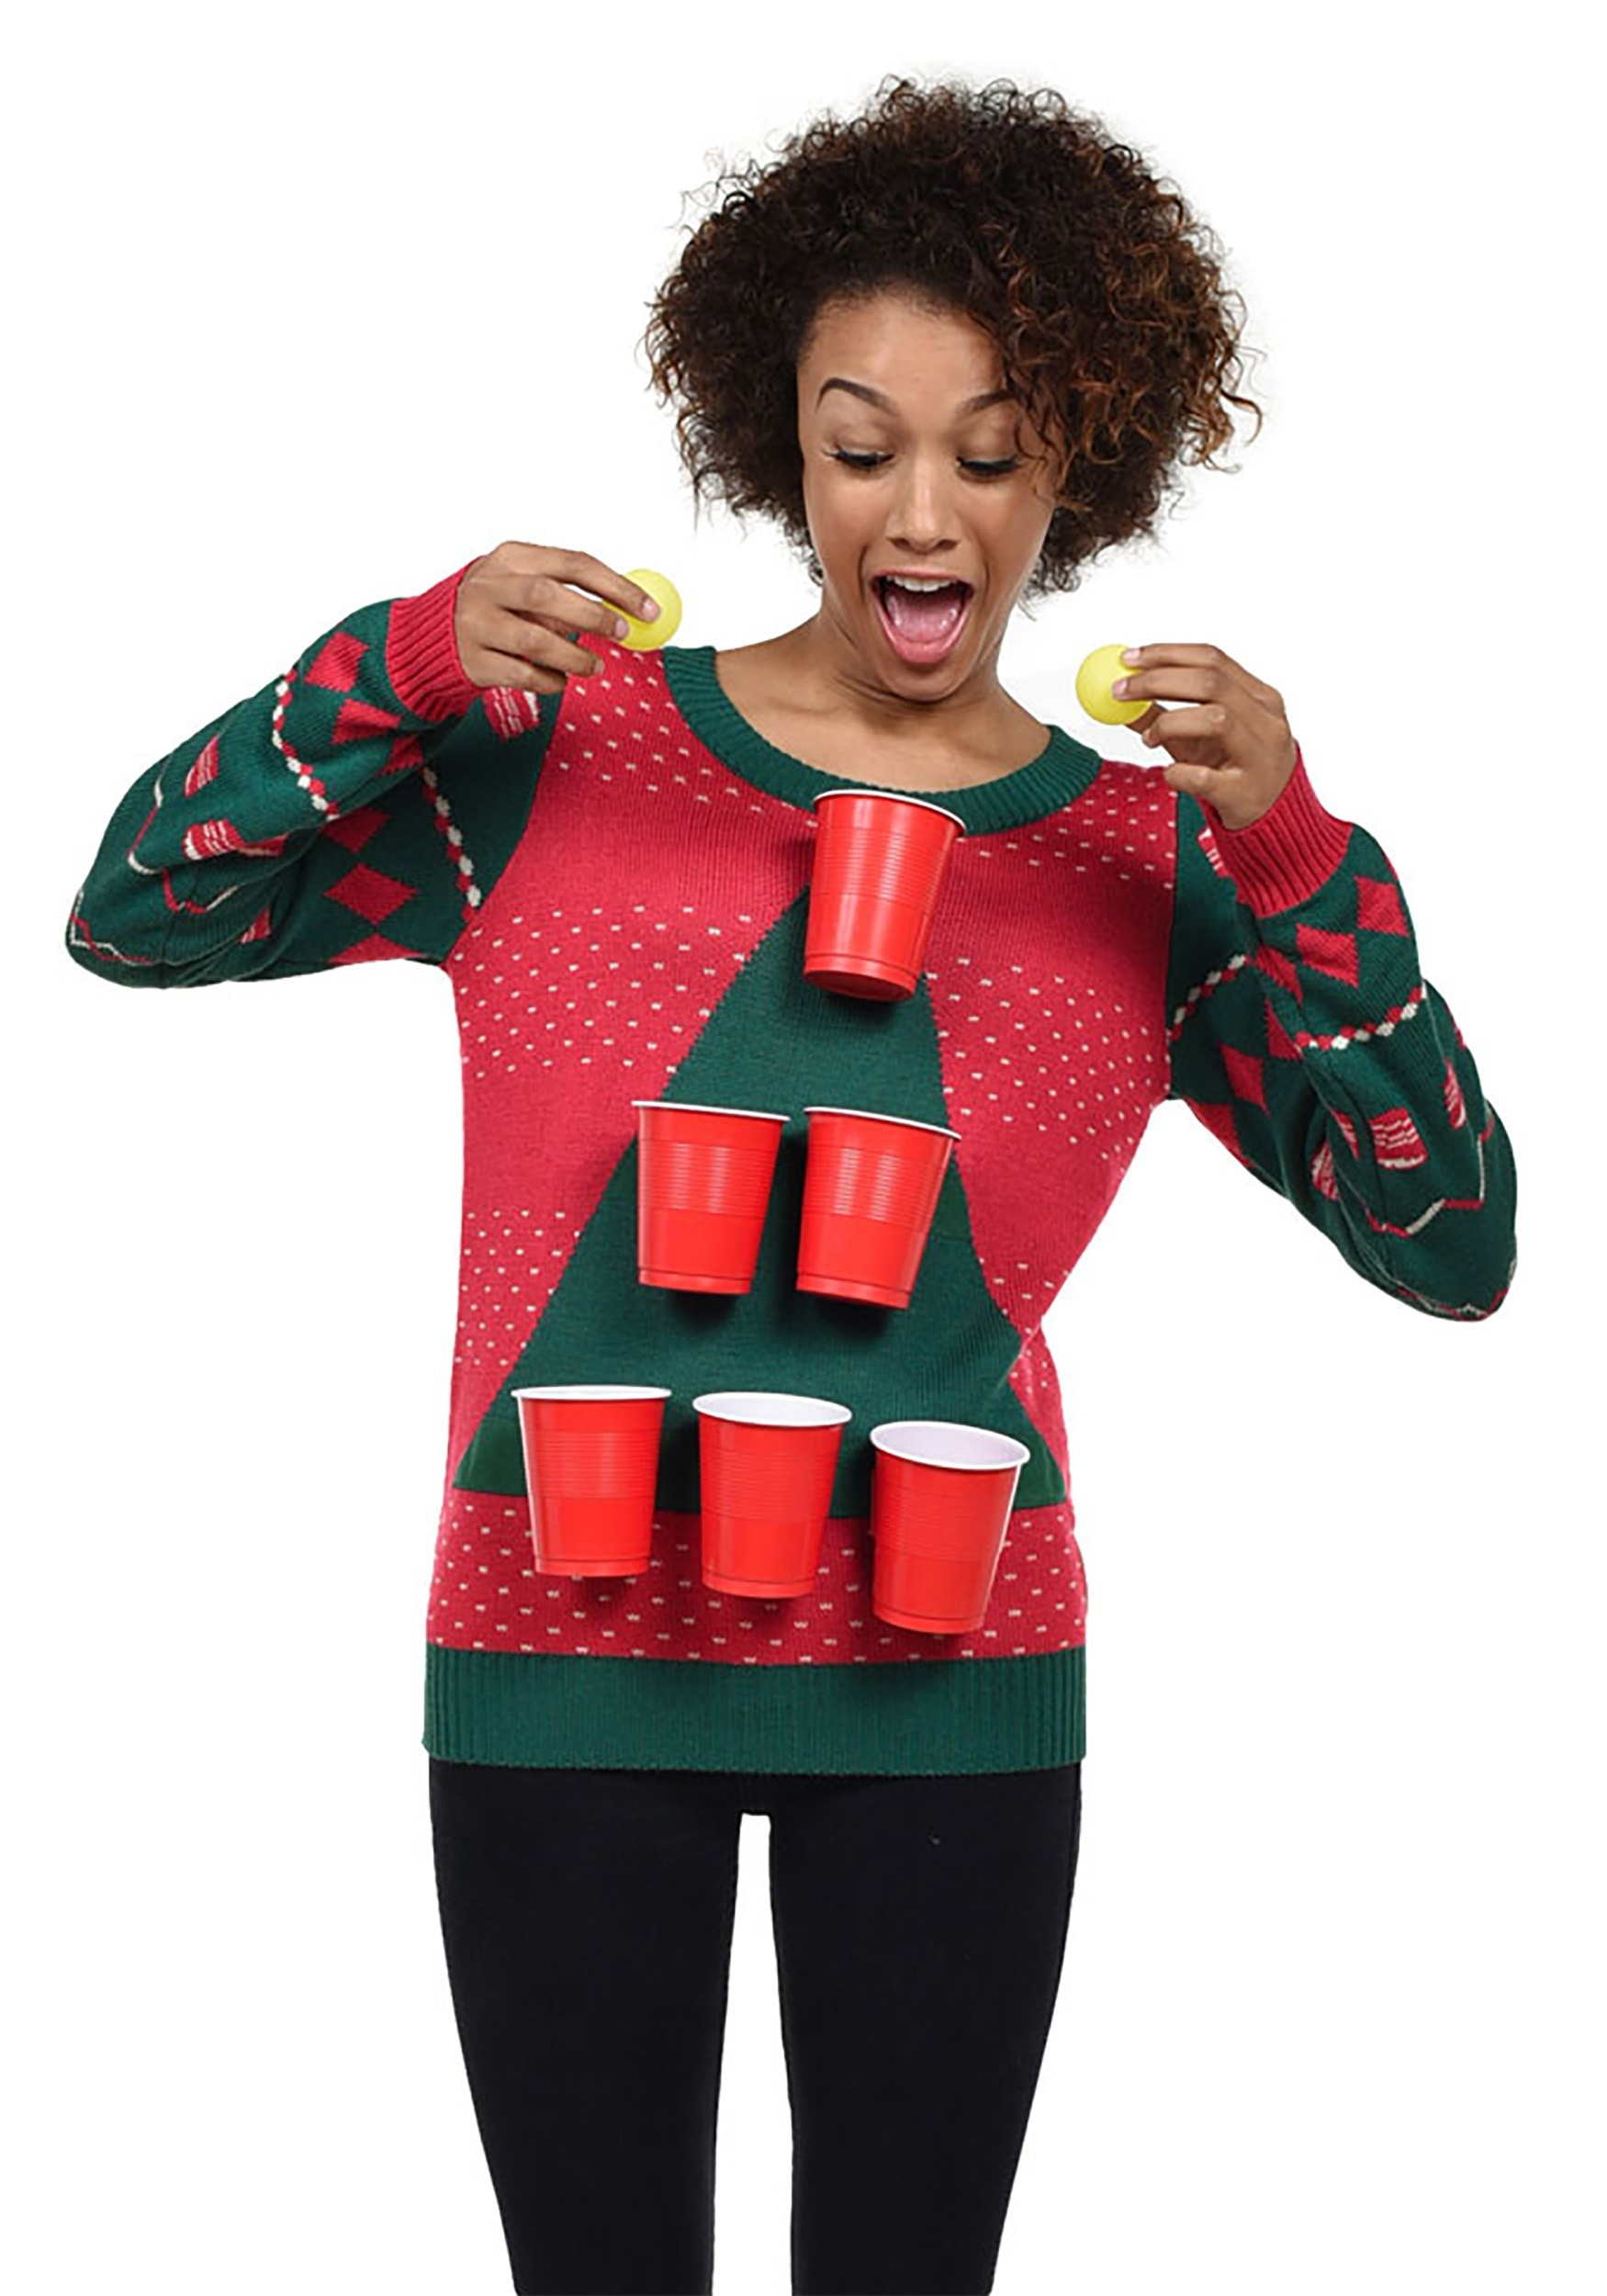 Tipsy Elves Beer Pong Ugly Christmas Sweater For Women